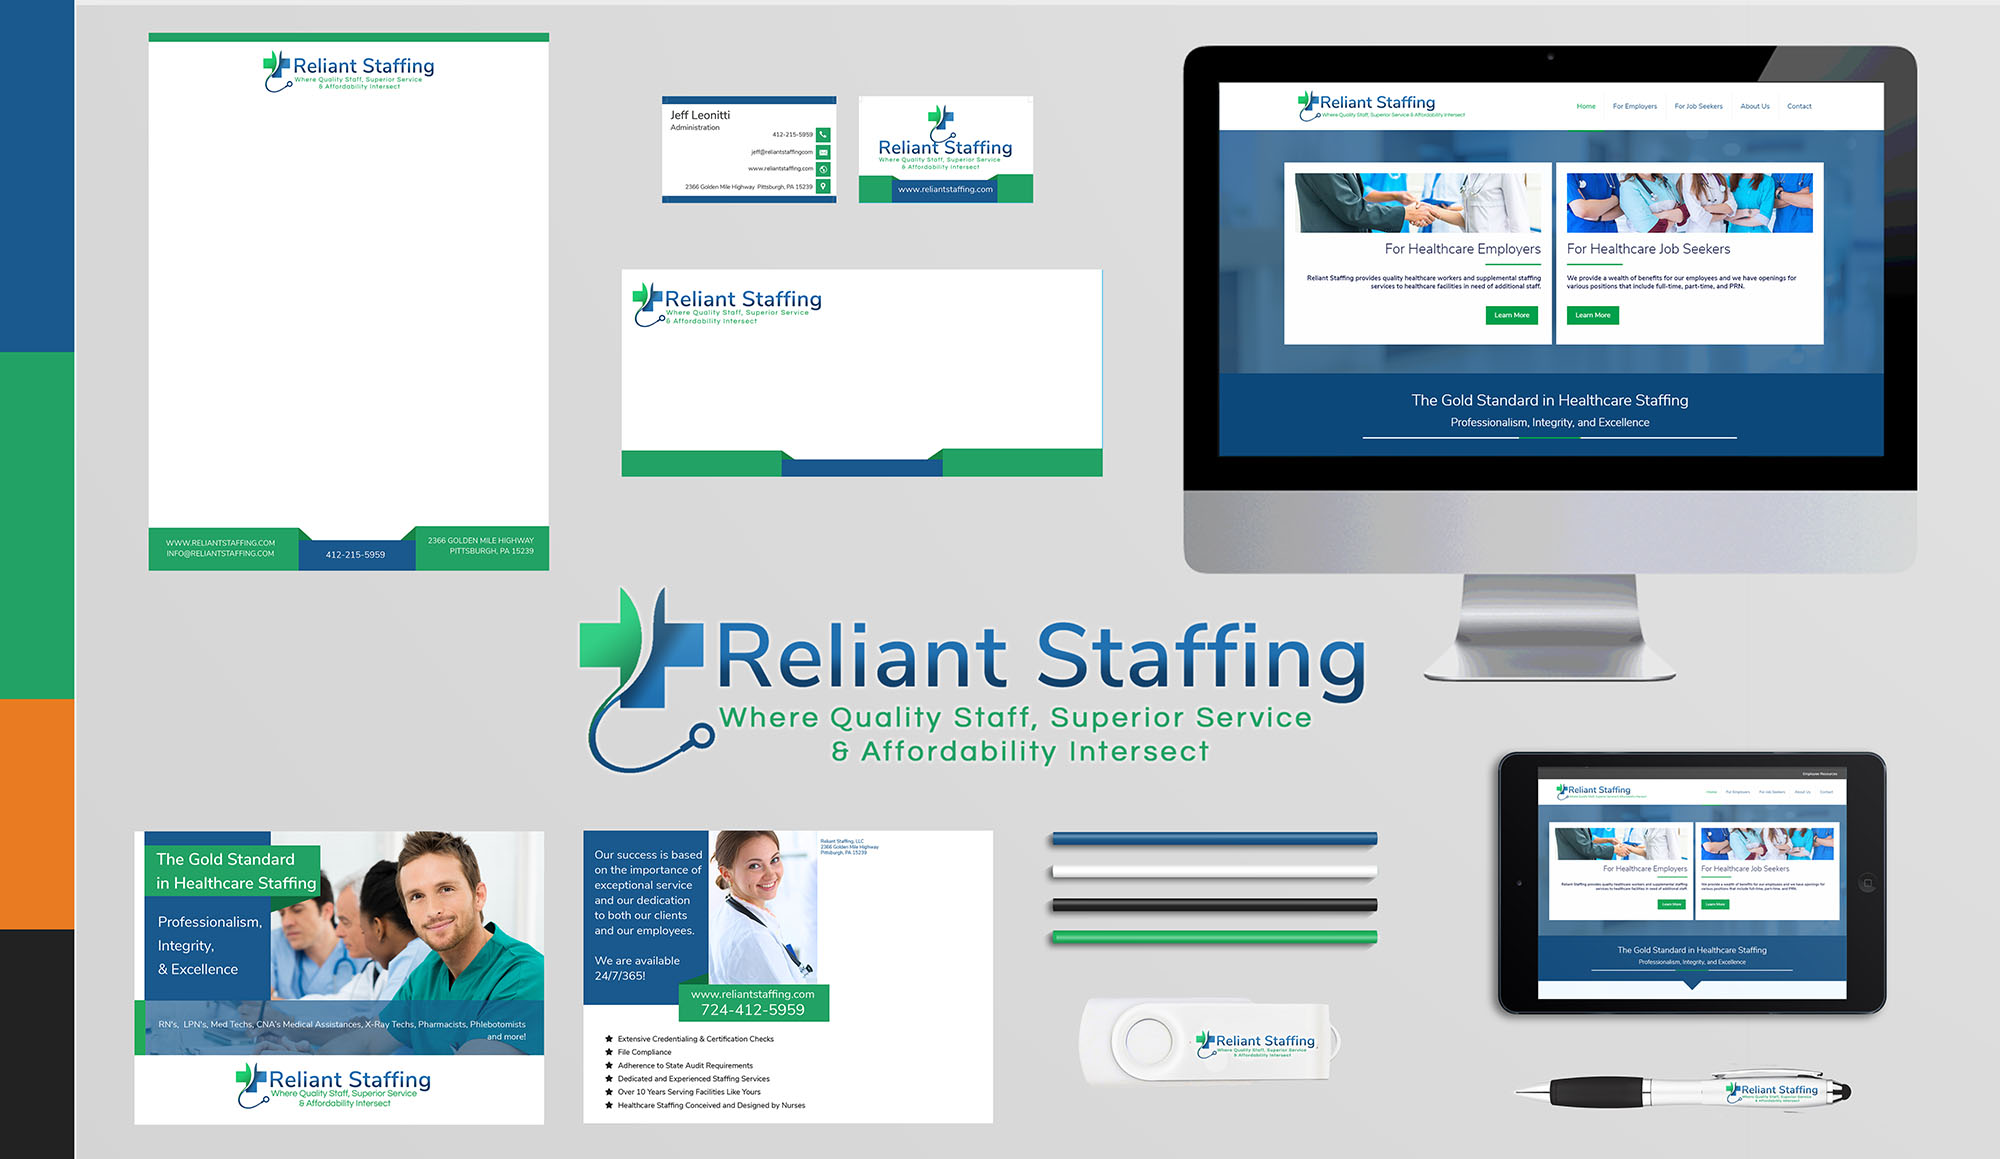 Reliant Staffing Branding Board